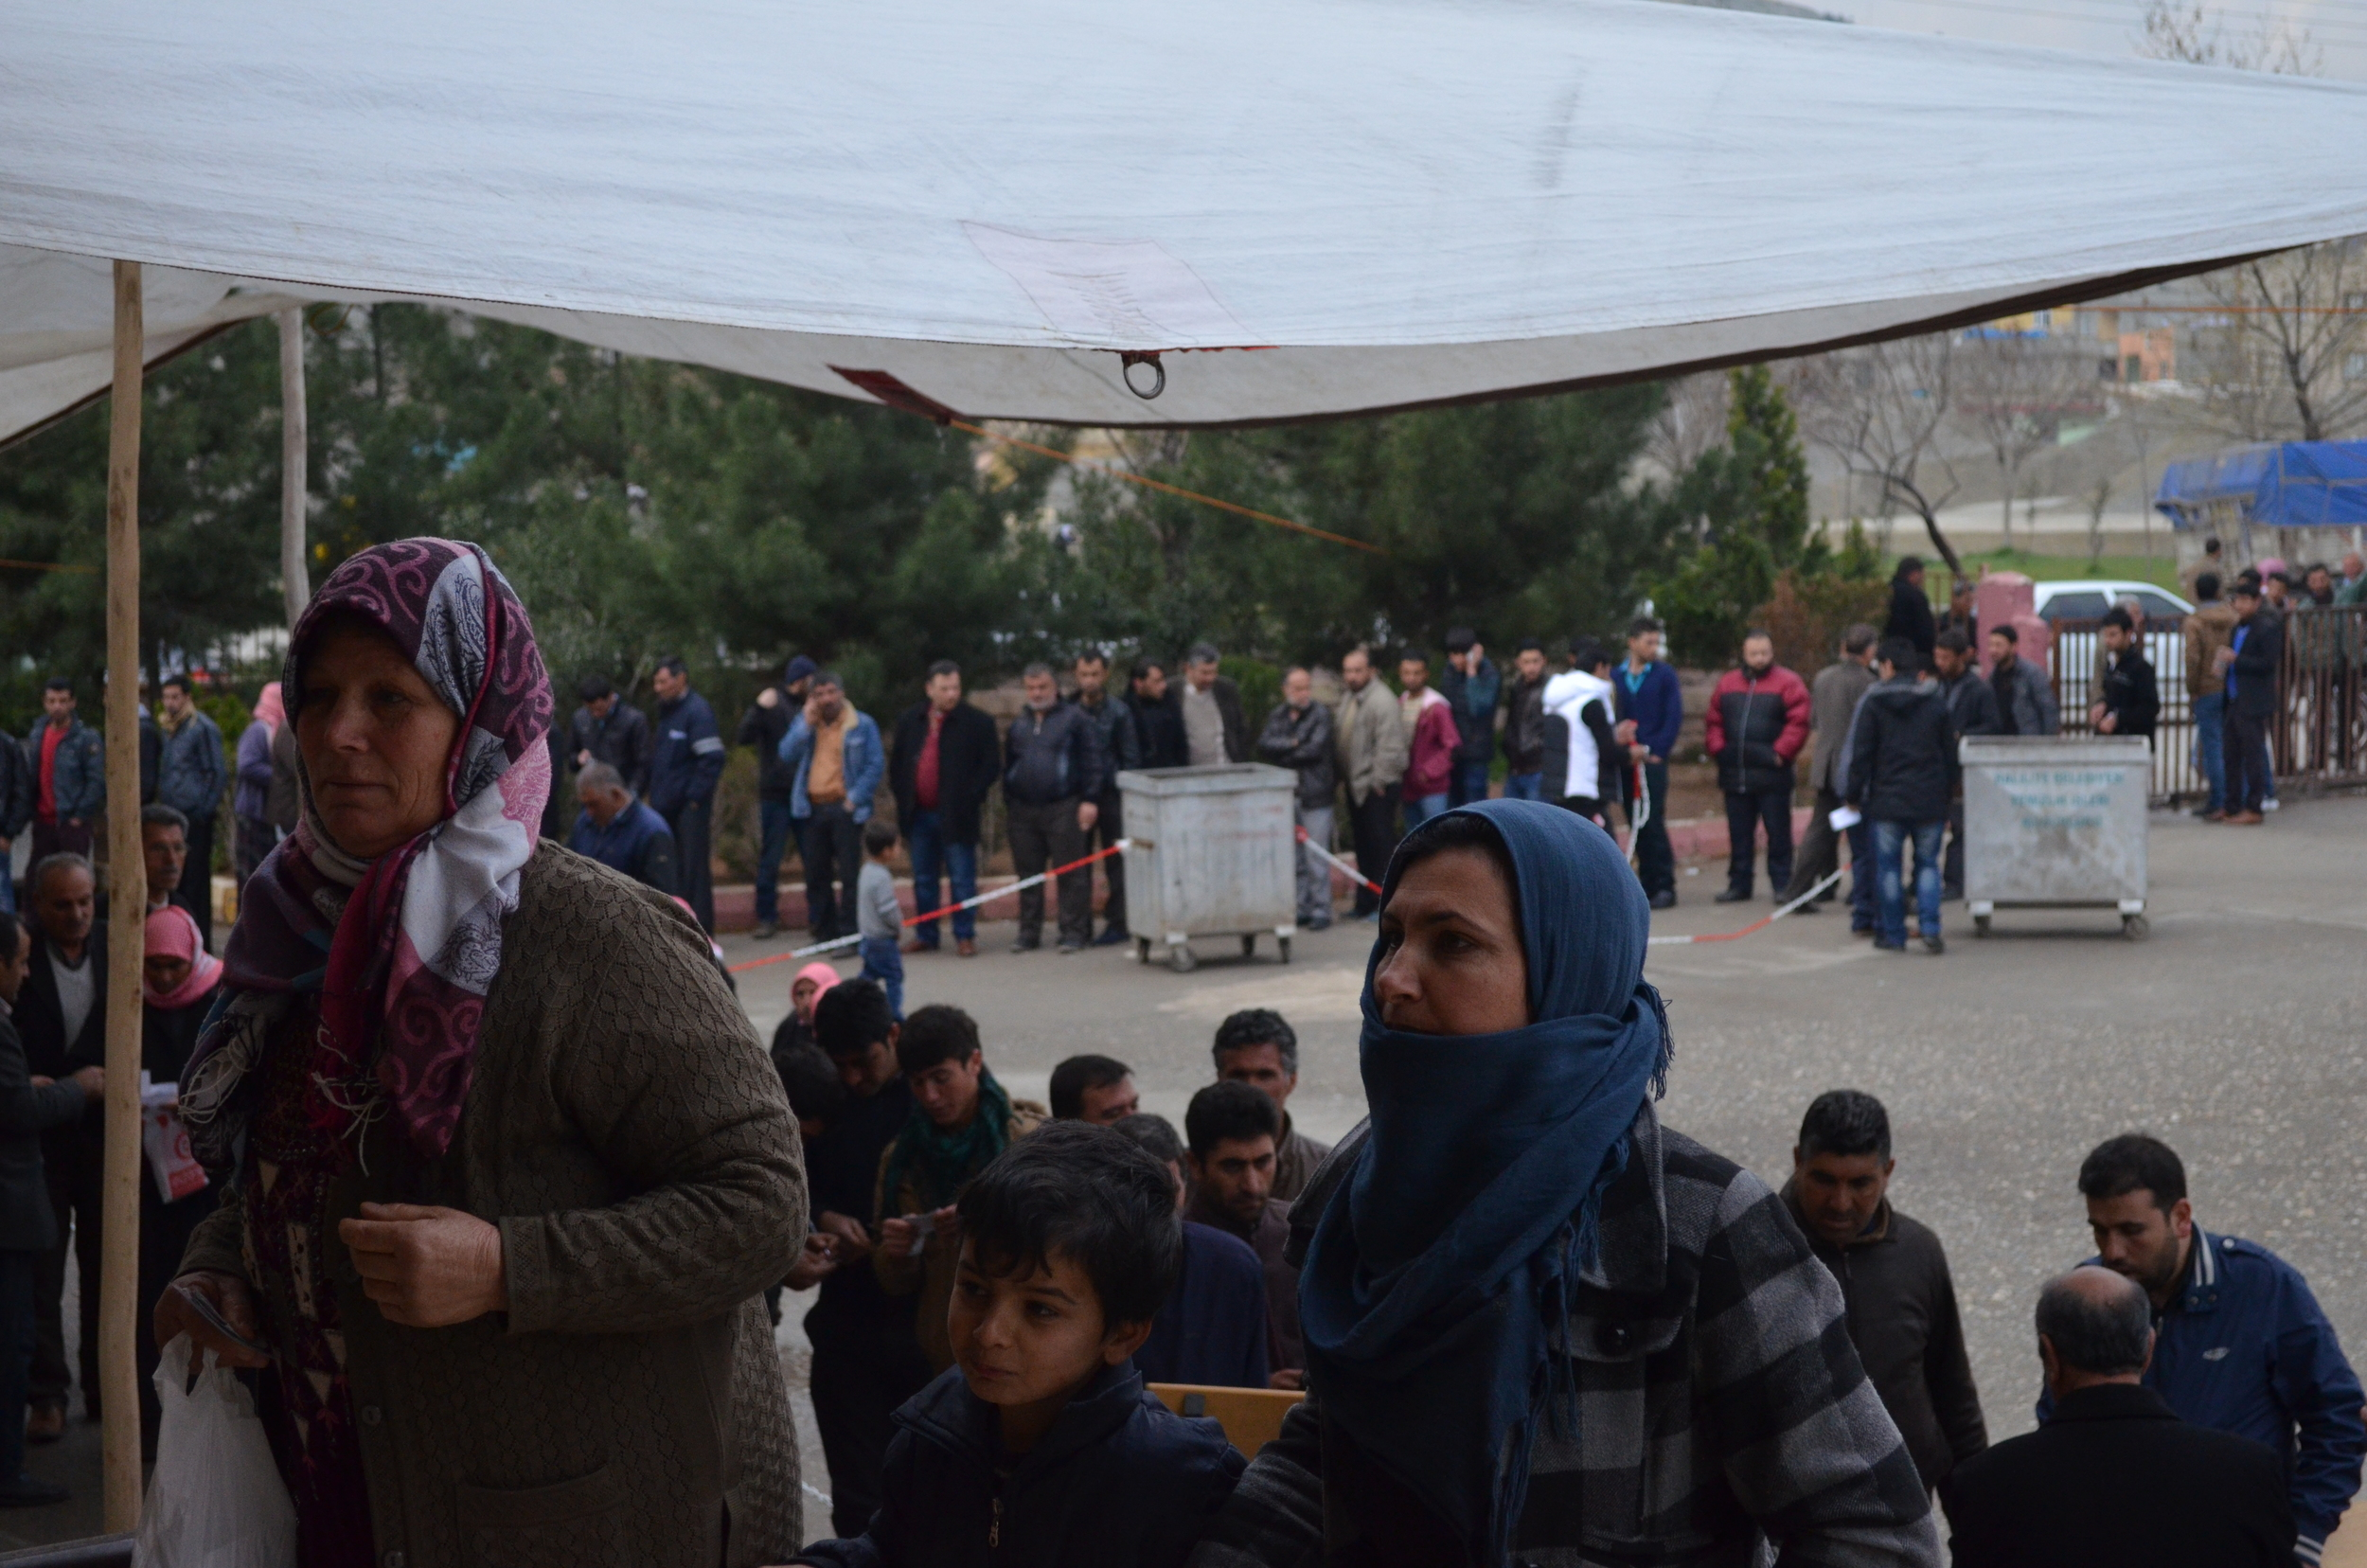 Syrian refugees must register with Turkish government. Once they have done so, they can also sign up for services from local non-governmental organizations.